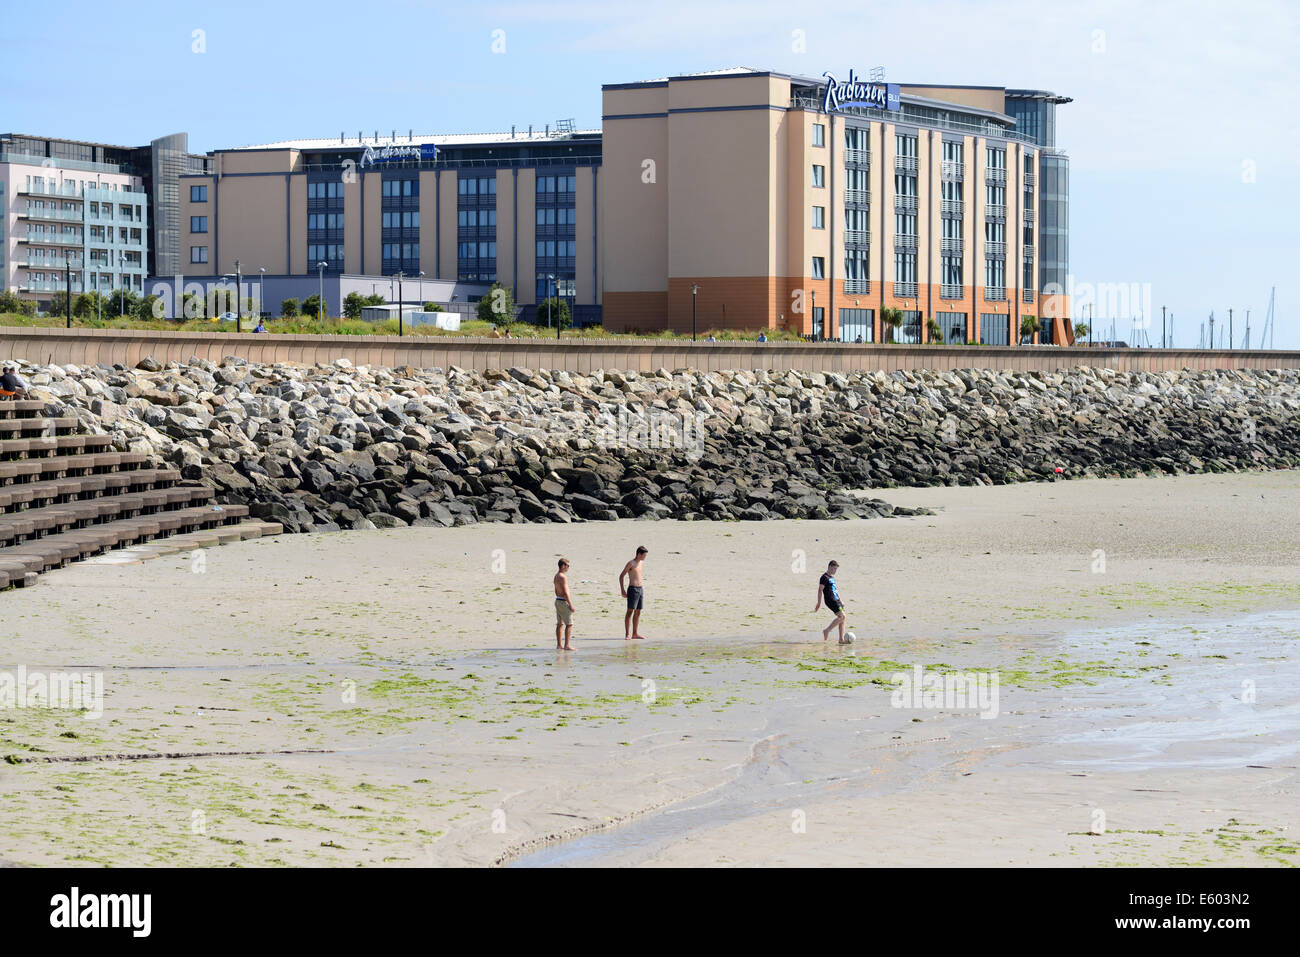 Radisson Blu Hotel on the shoreline at St Helier, Jersey, Channel Islands, GB - Stock Image